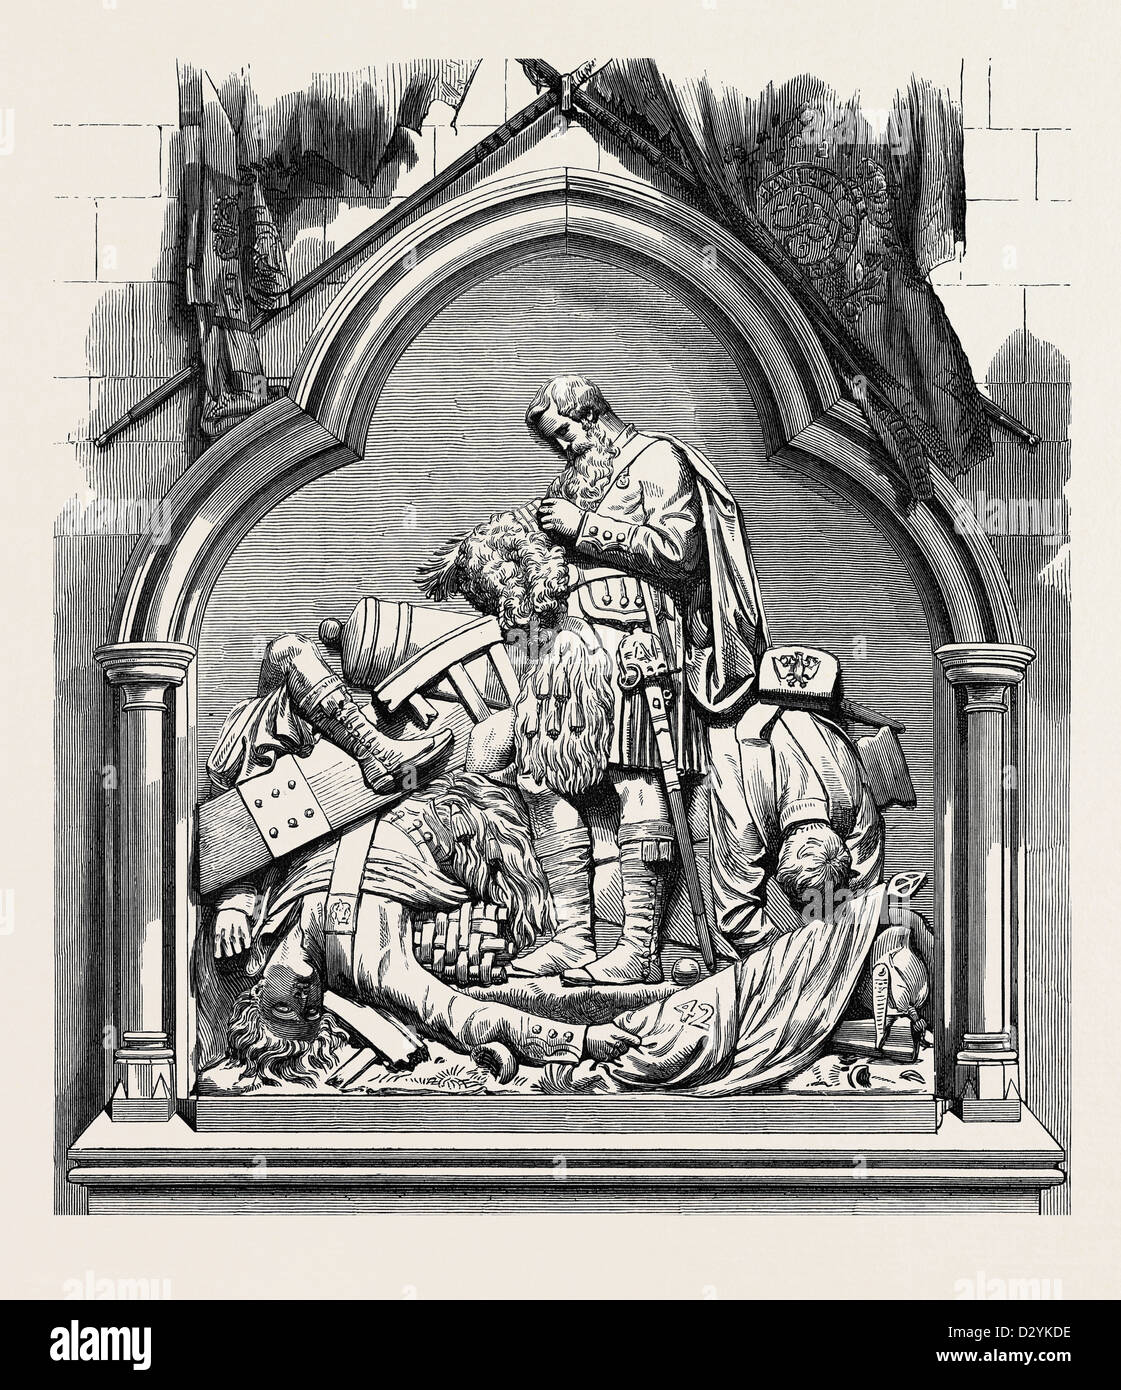 MONUMENT TO THE 42ND HIGHLANDERS IN DUNKELD CATHEDRAL 1874 - Stock Image